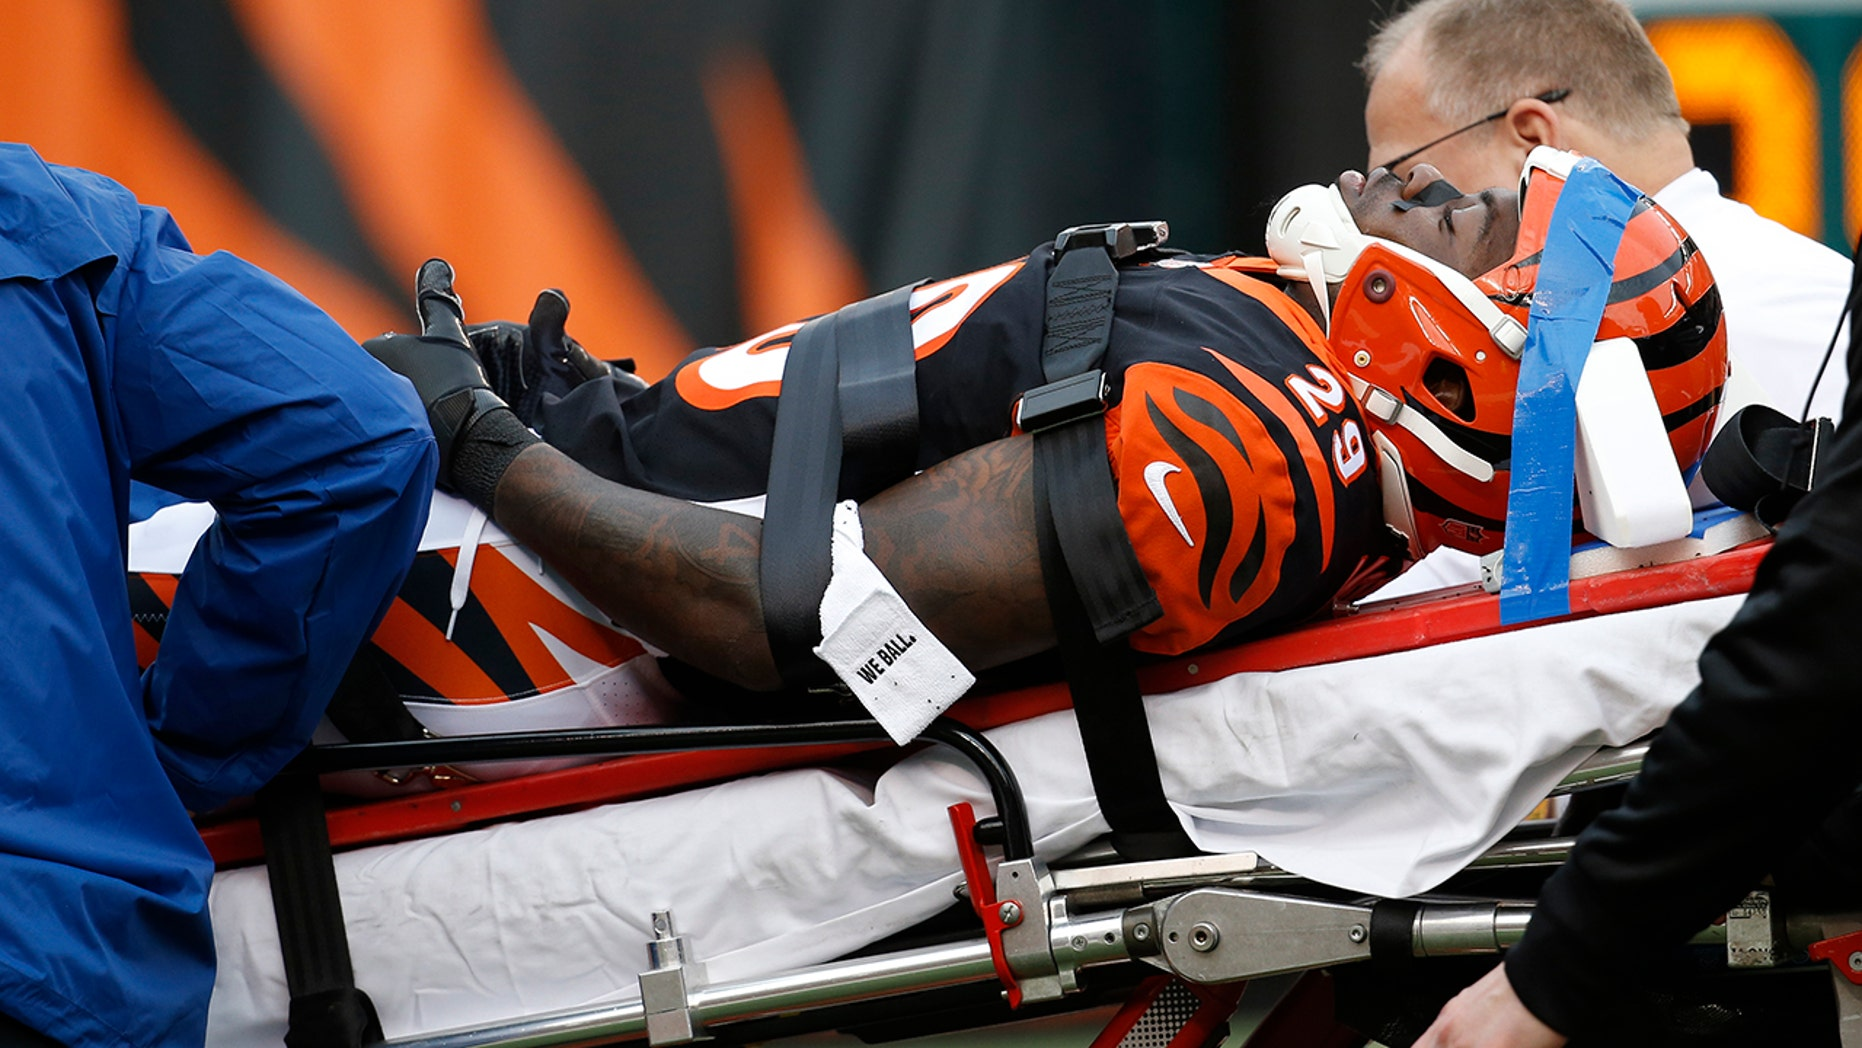 Cincinnati Bengals cornerback Tony McRae (29) is taken off the field after an injury in the second half of an NFL football game against the Cleveland Browns, Sunday, Nov. 25, 2018, in Cincinnati.